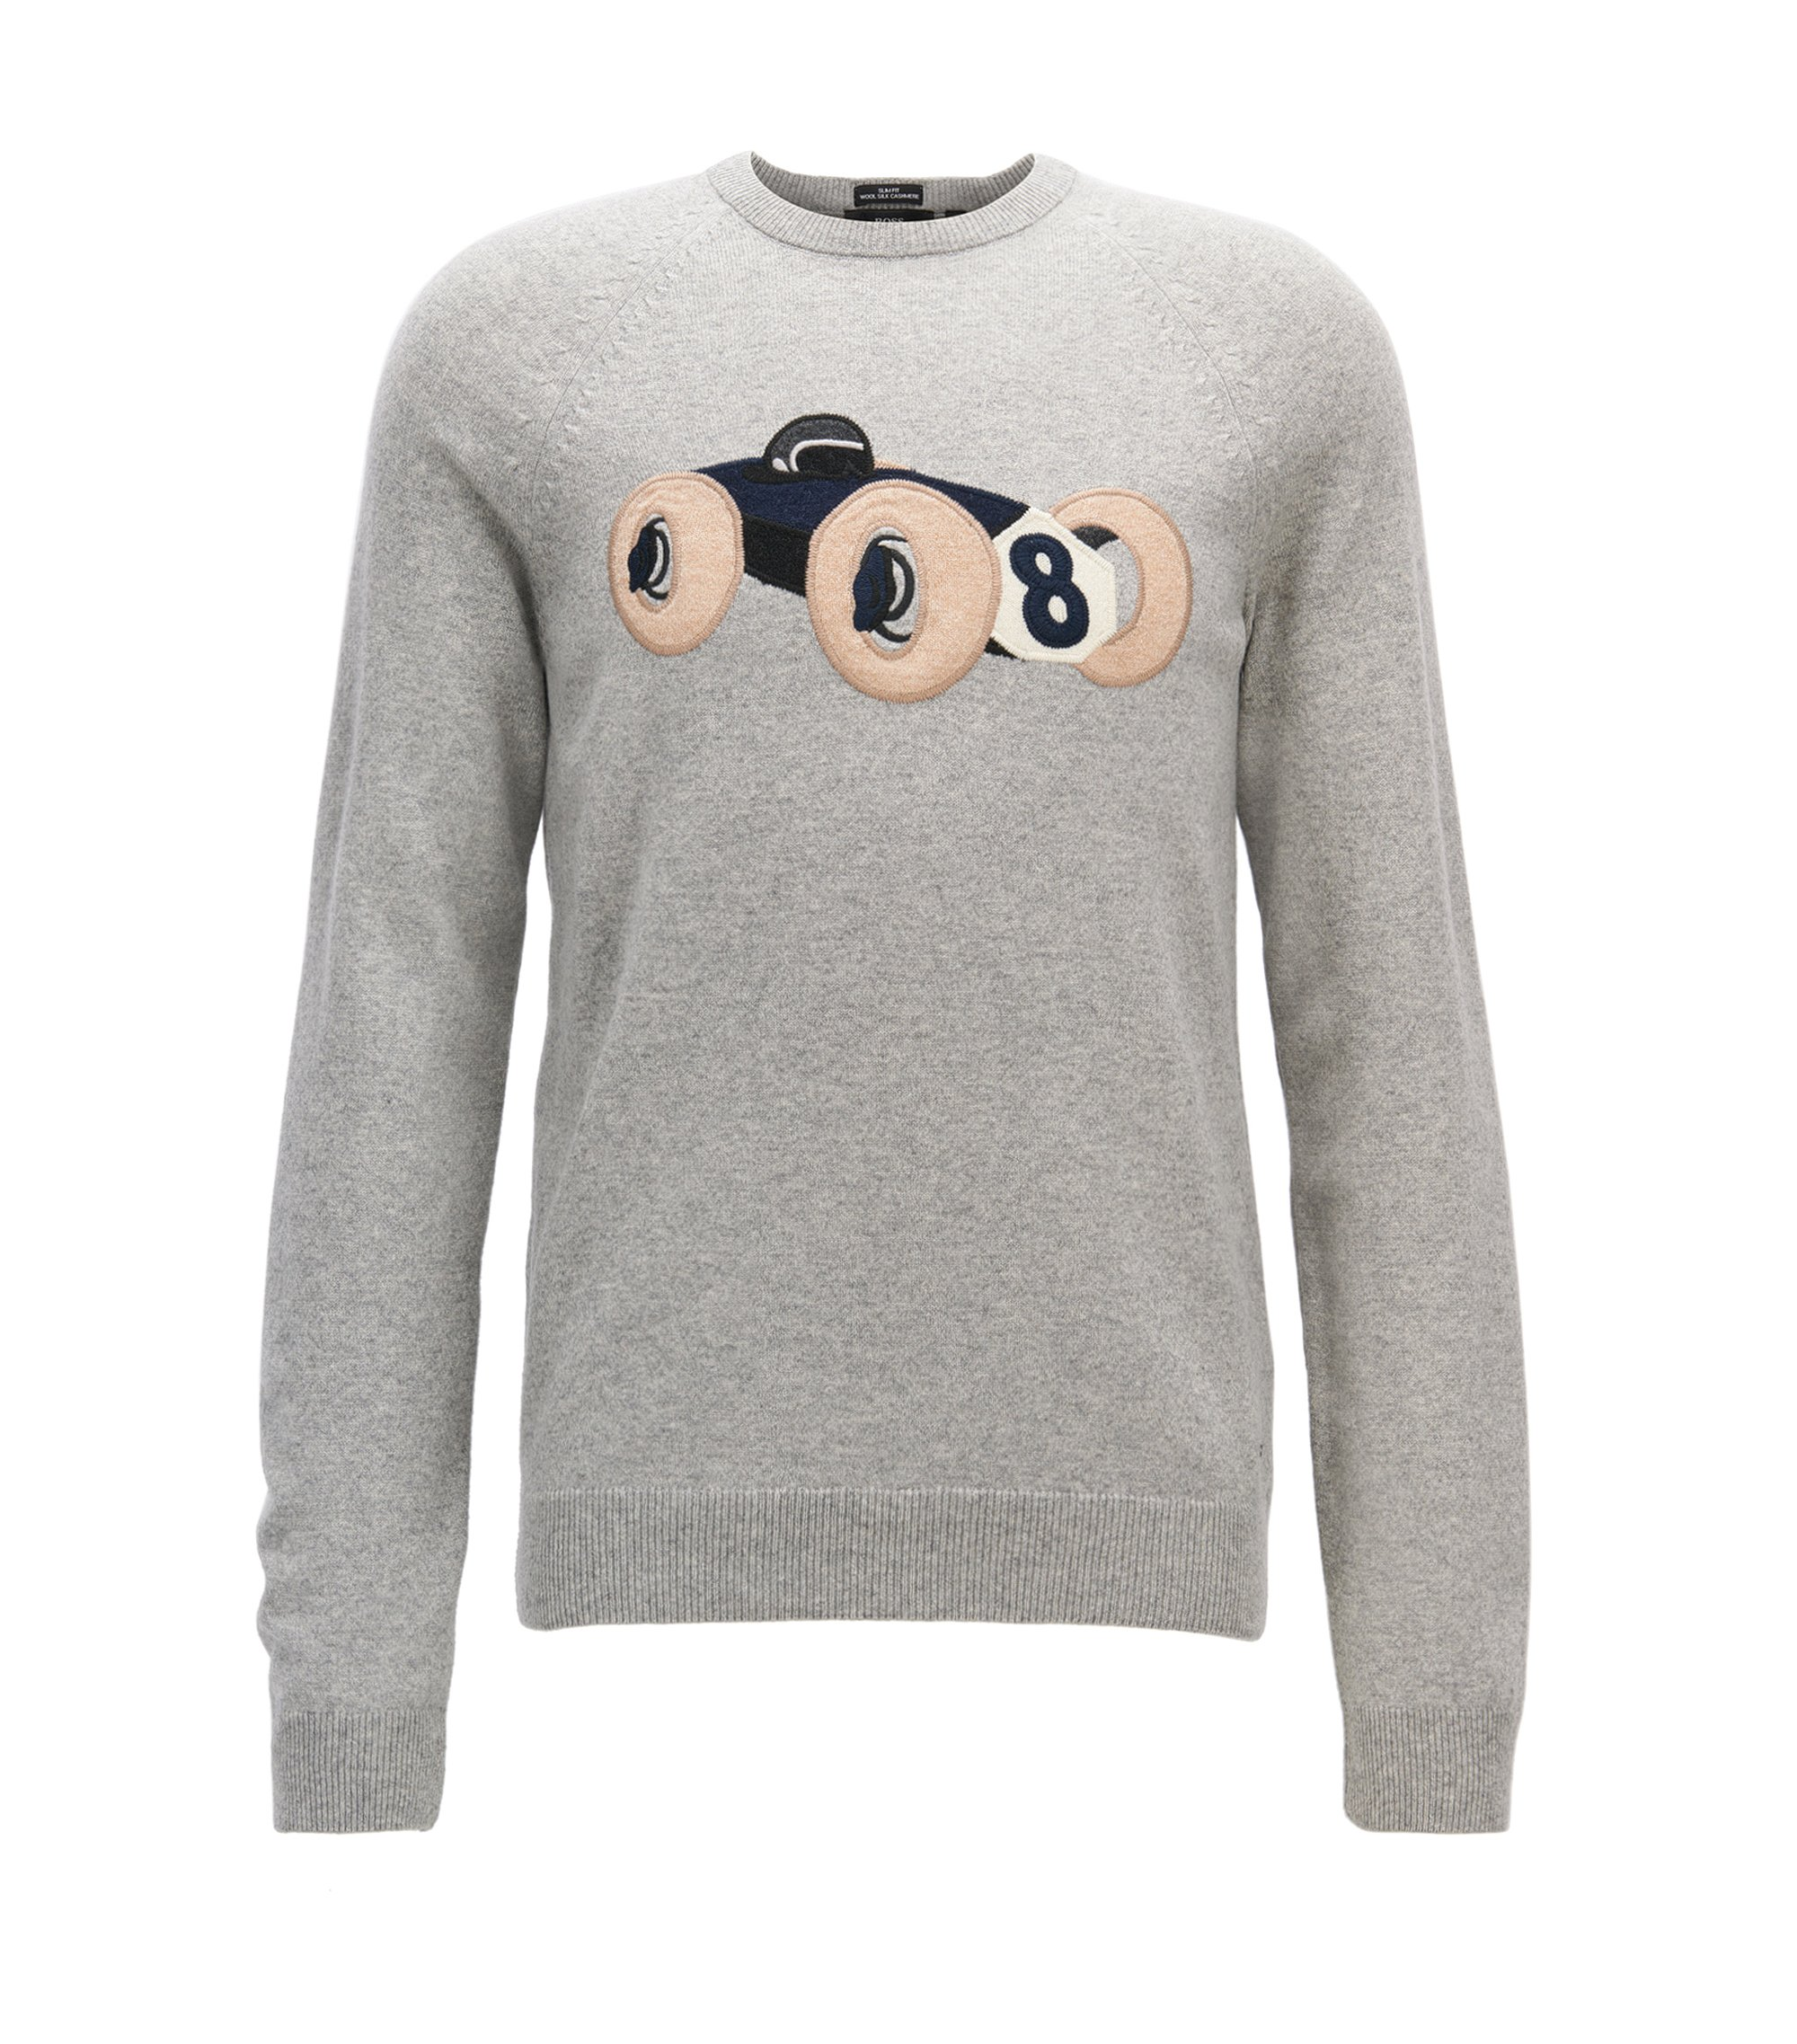 Wool-blend sweater with intarsia race car motif, Light Grey